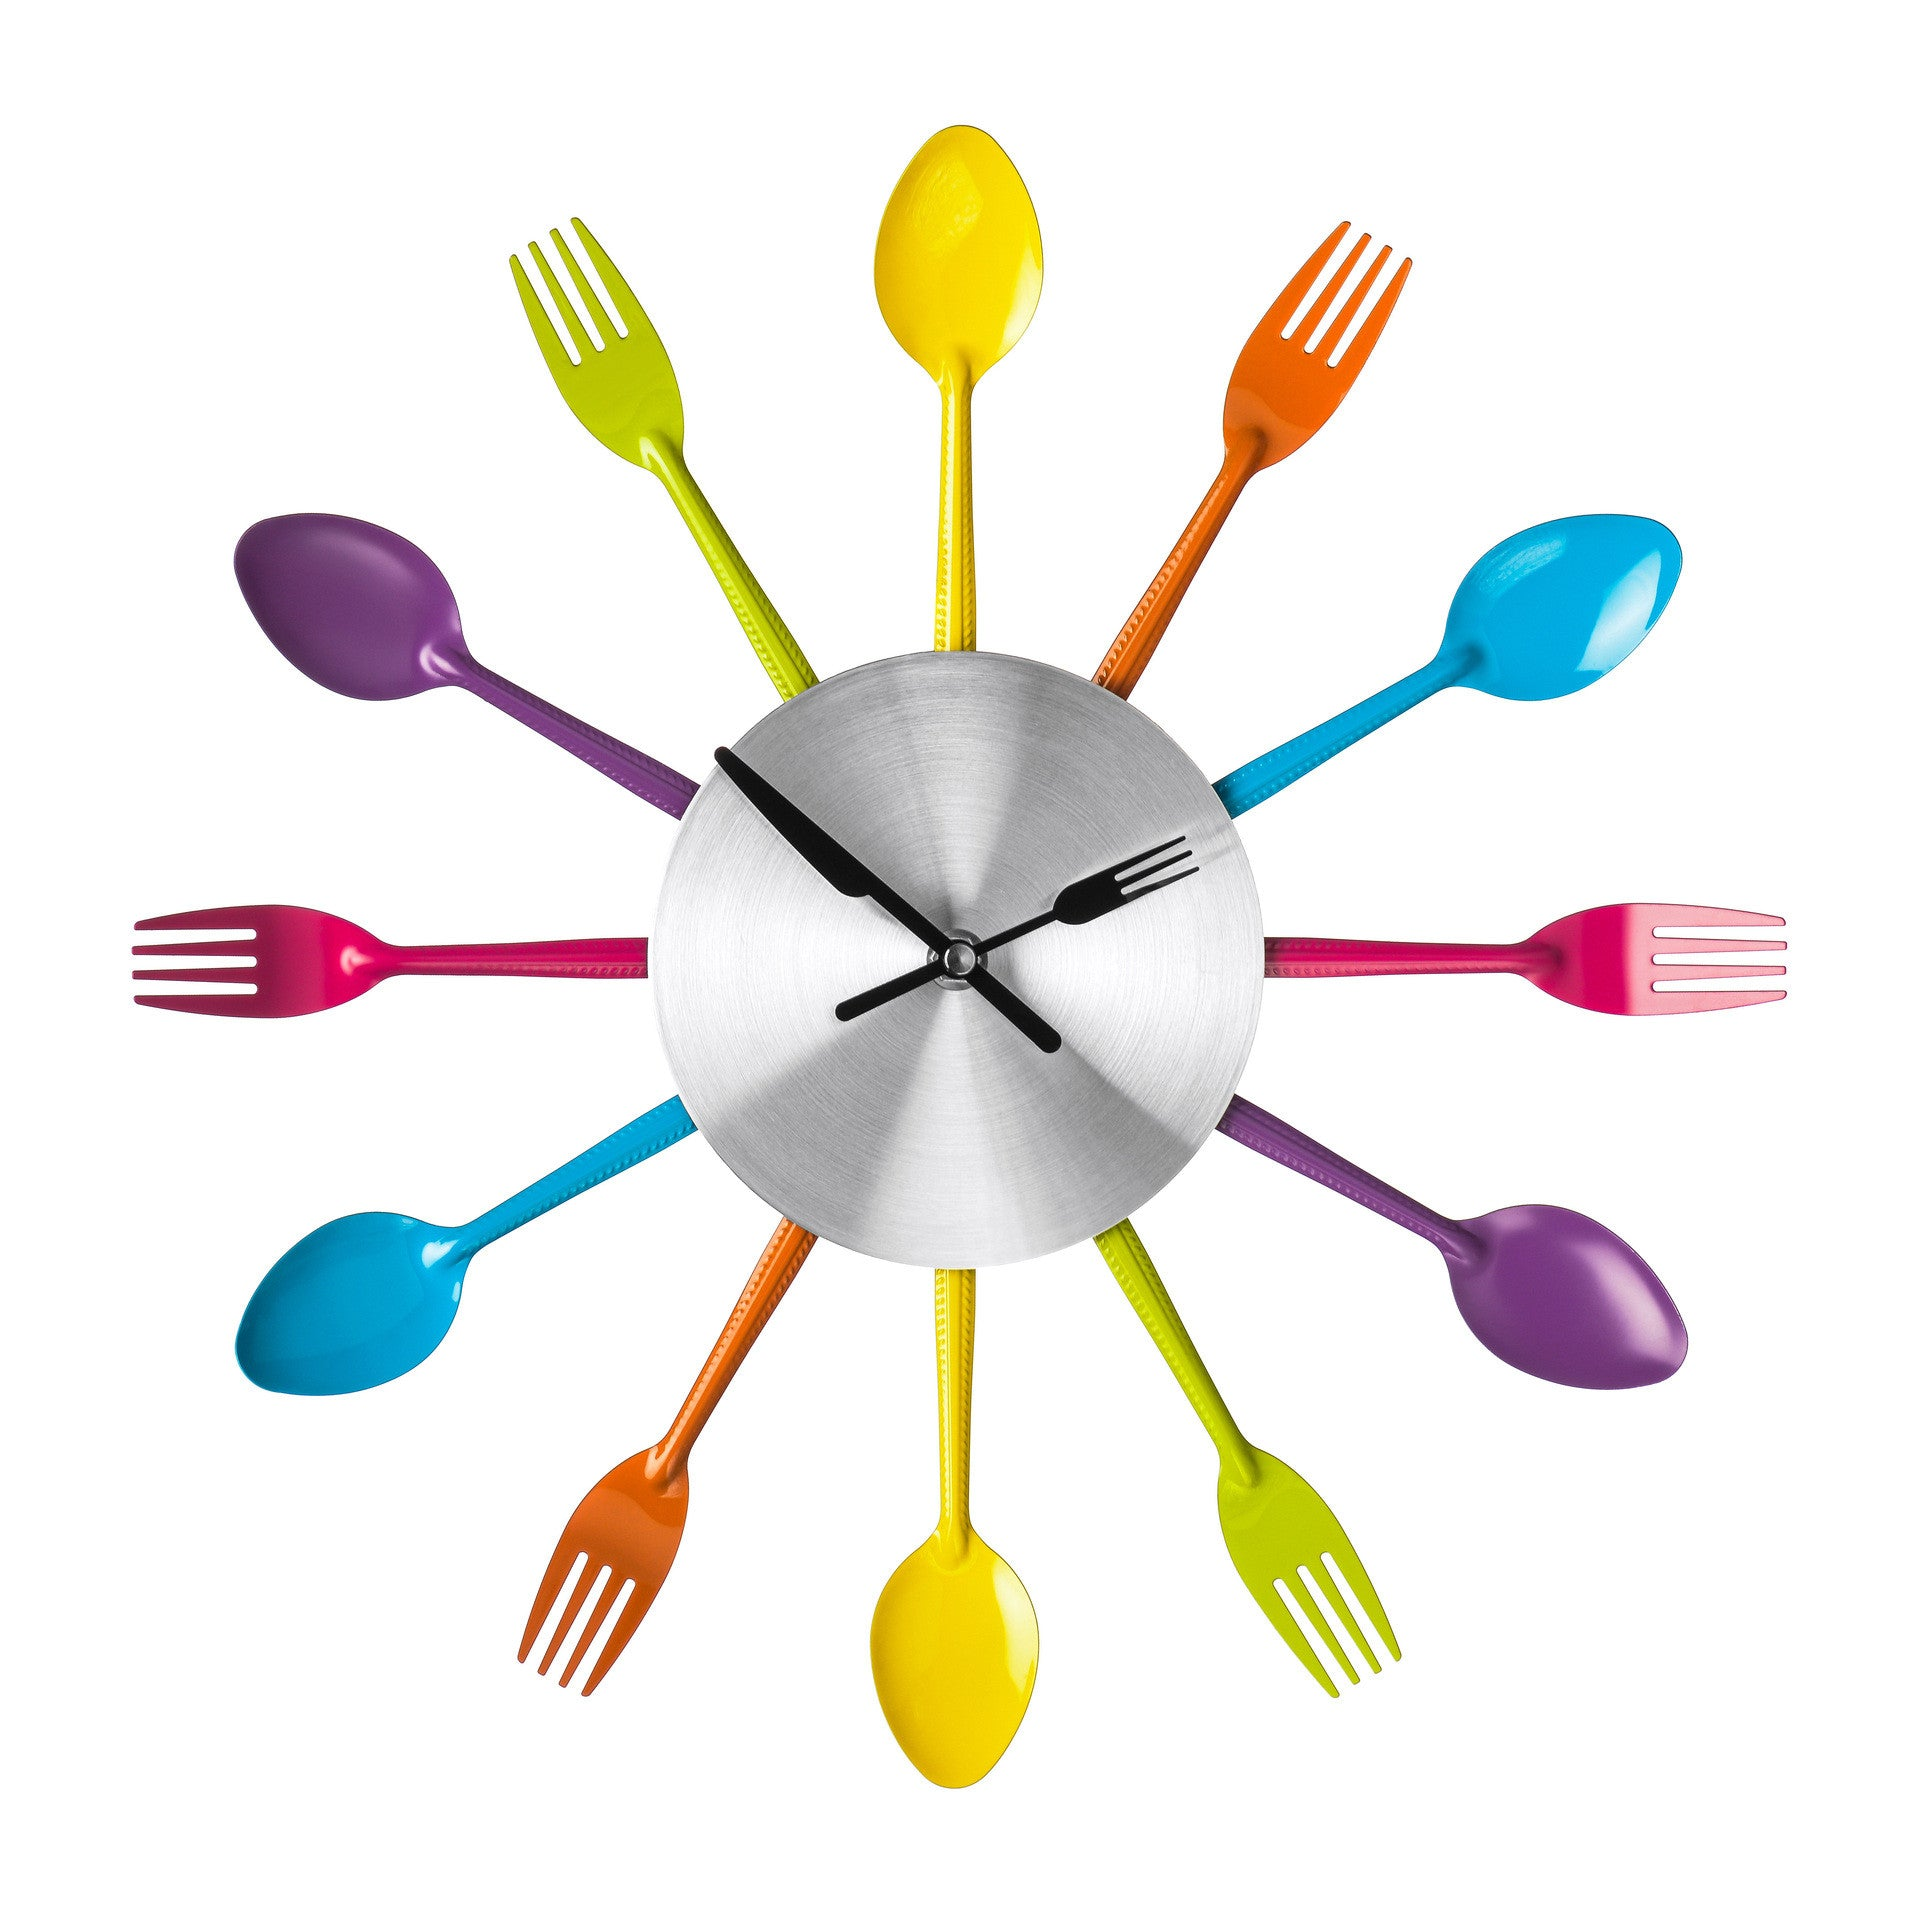 Premier 37cm Diameter Multi Colored Cutlery Wall Clock-2200880 - Homely Nigeria